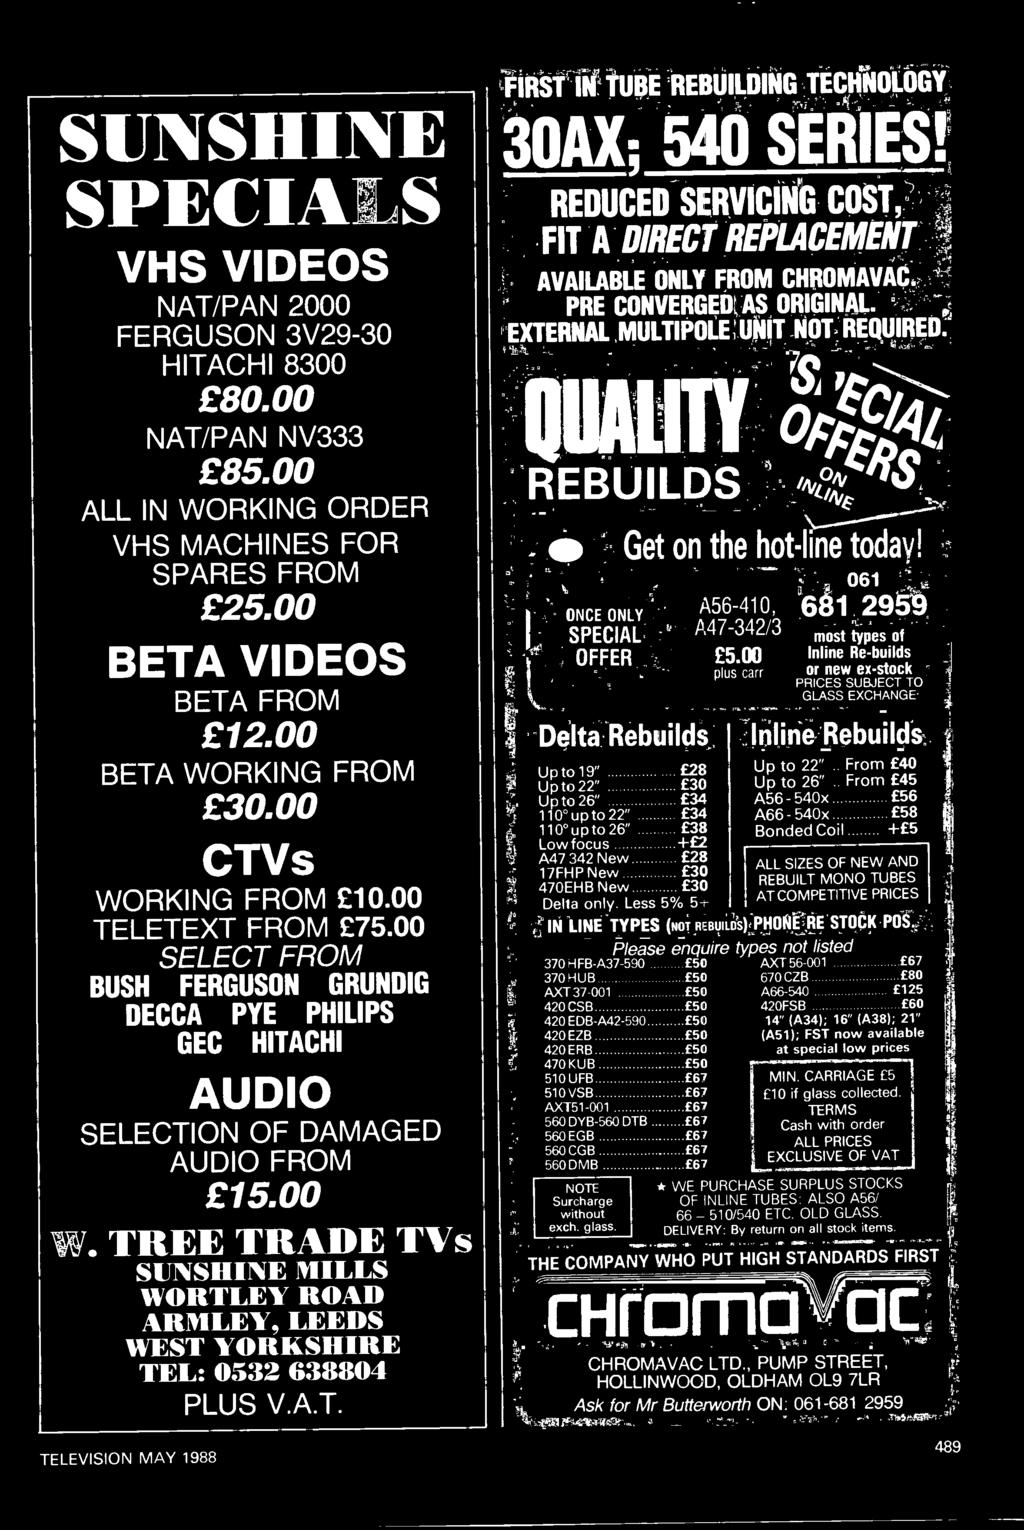 TREE TRADE TVs SUNSHINE MILLS WORTLEY ROAD ARMLEY, LEEDS WEST YORKSHIRE TEL: 0532 638804 PLUS V.A.T. TELEVISION MAY 1988 FIRST IN TUBE REBUILDING TECHNOLOGY 30AX; 540 SERIES!